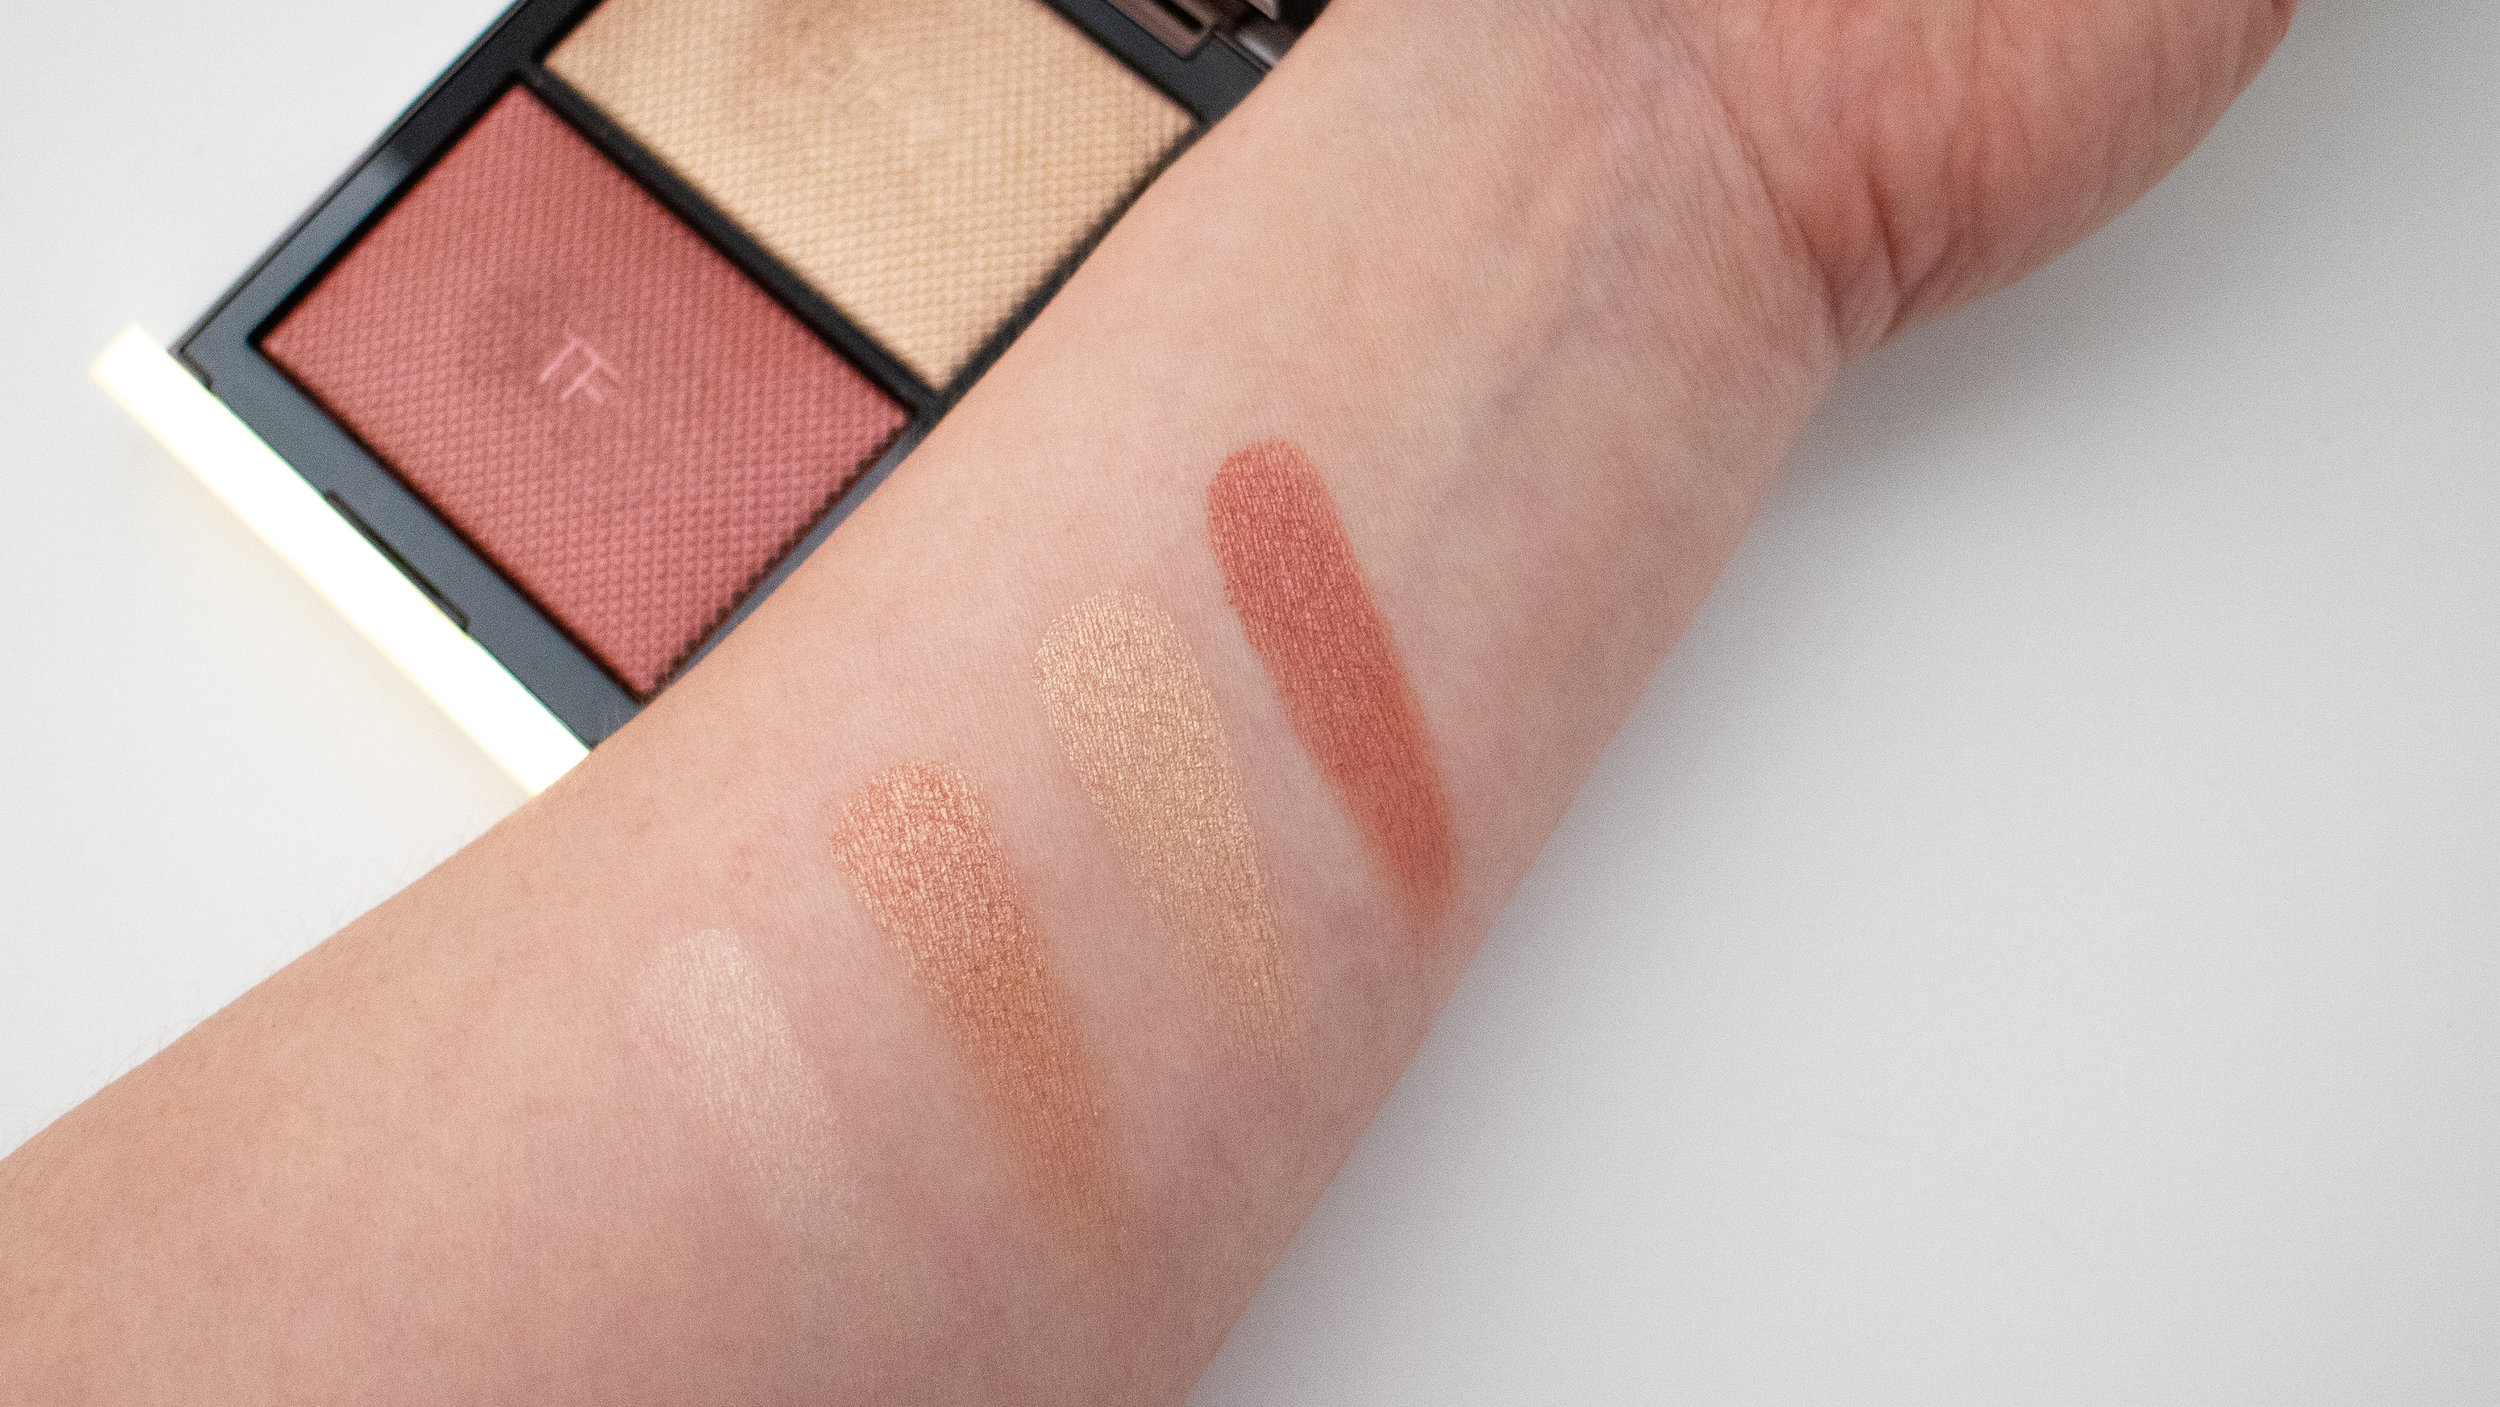 Swatches of Tom Ford Skin Illuminating Powder Duo in Incandescent